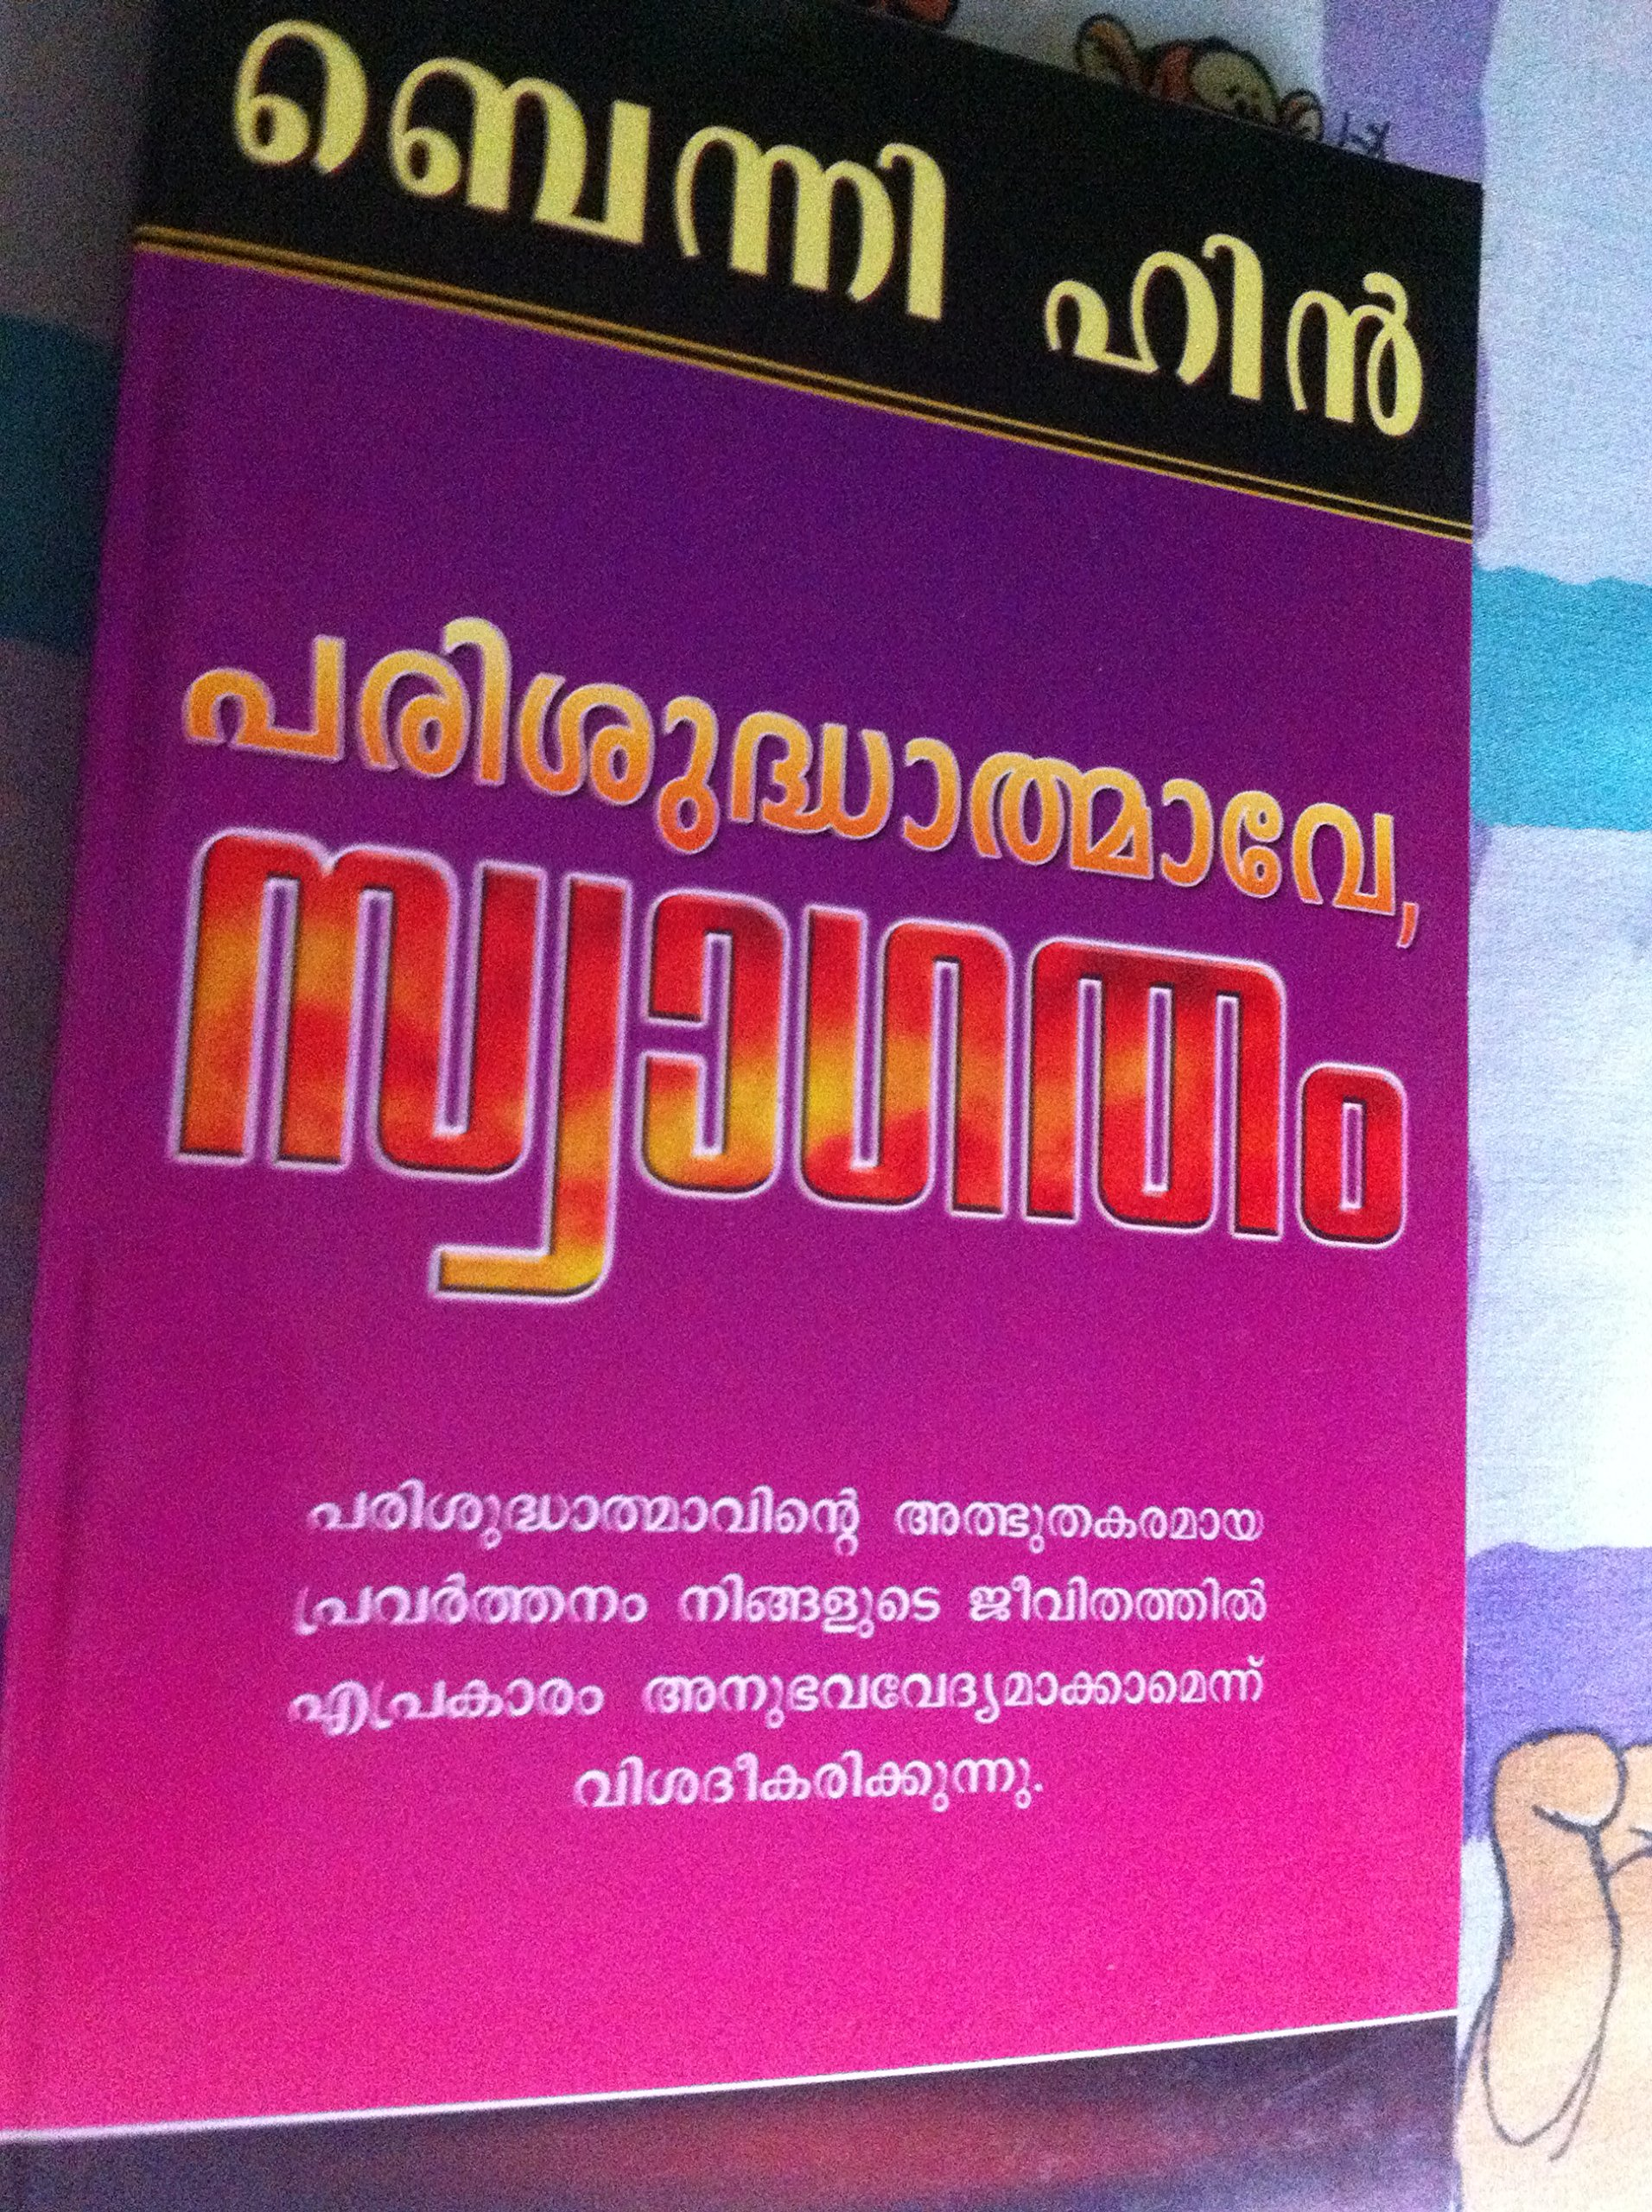 PARISHUDHATHMAAVE SWAAGATHAM- WELCOME HOLY SPIRIT IN MALAYALAM